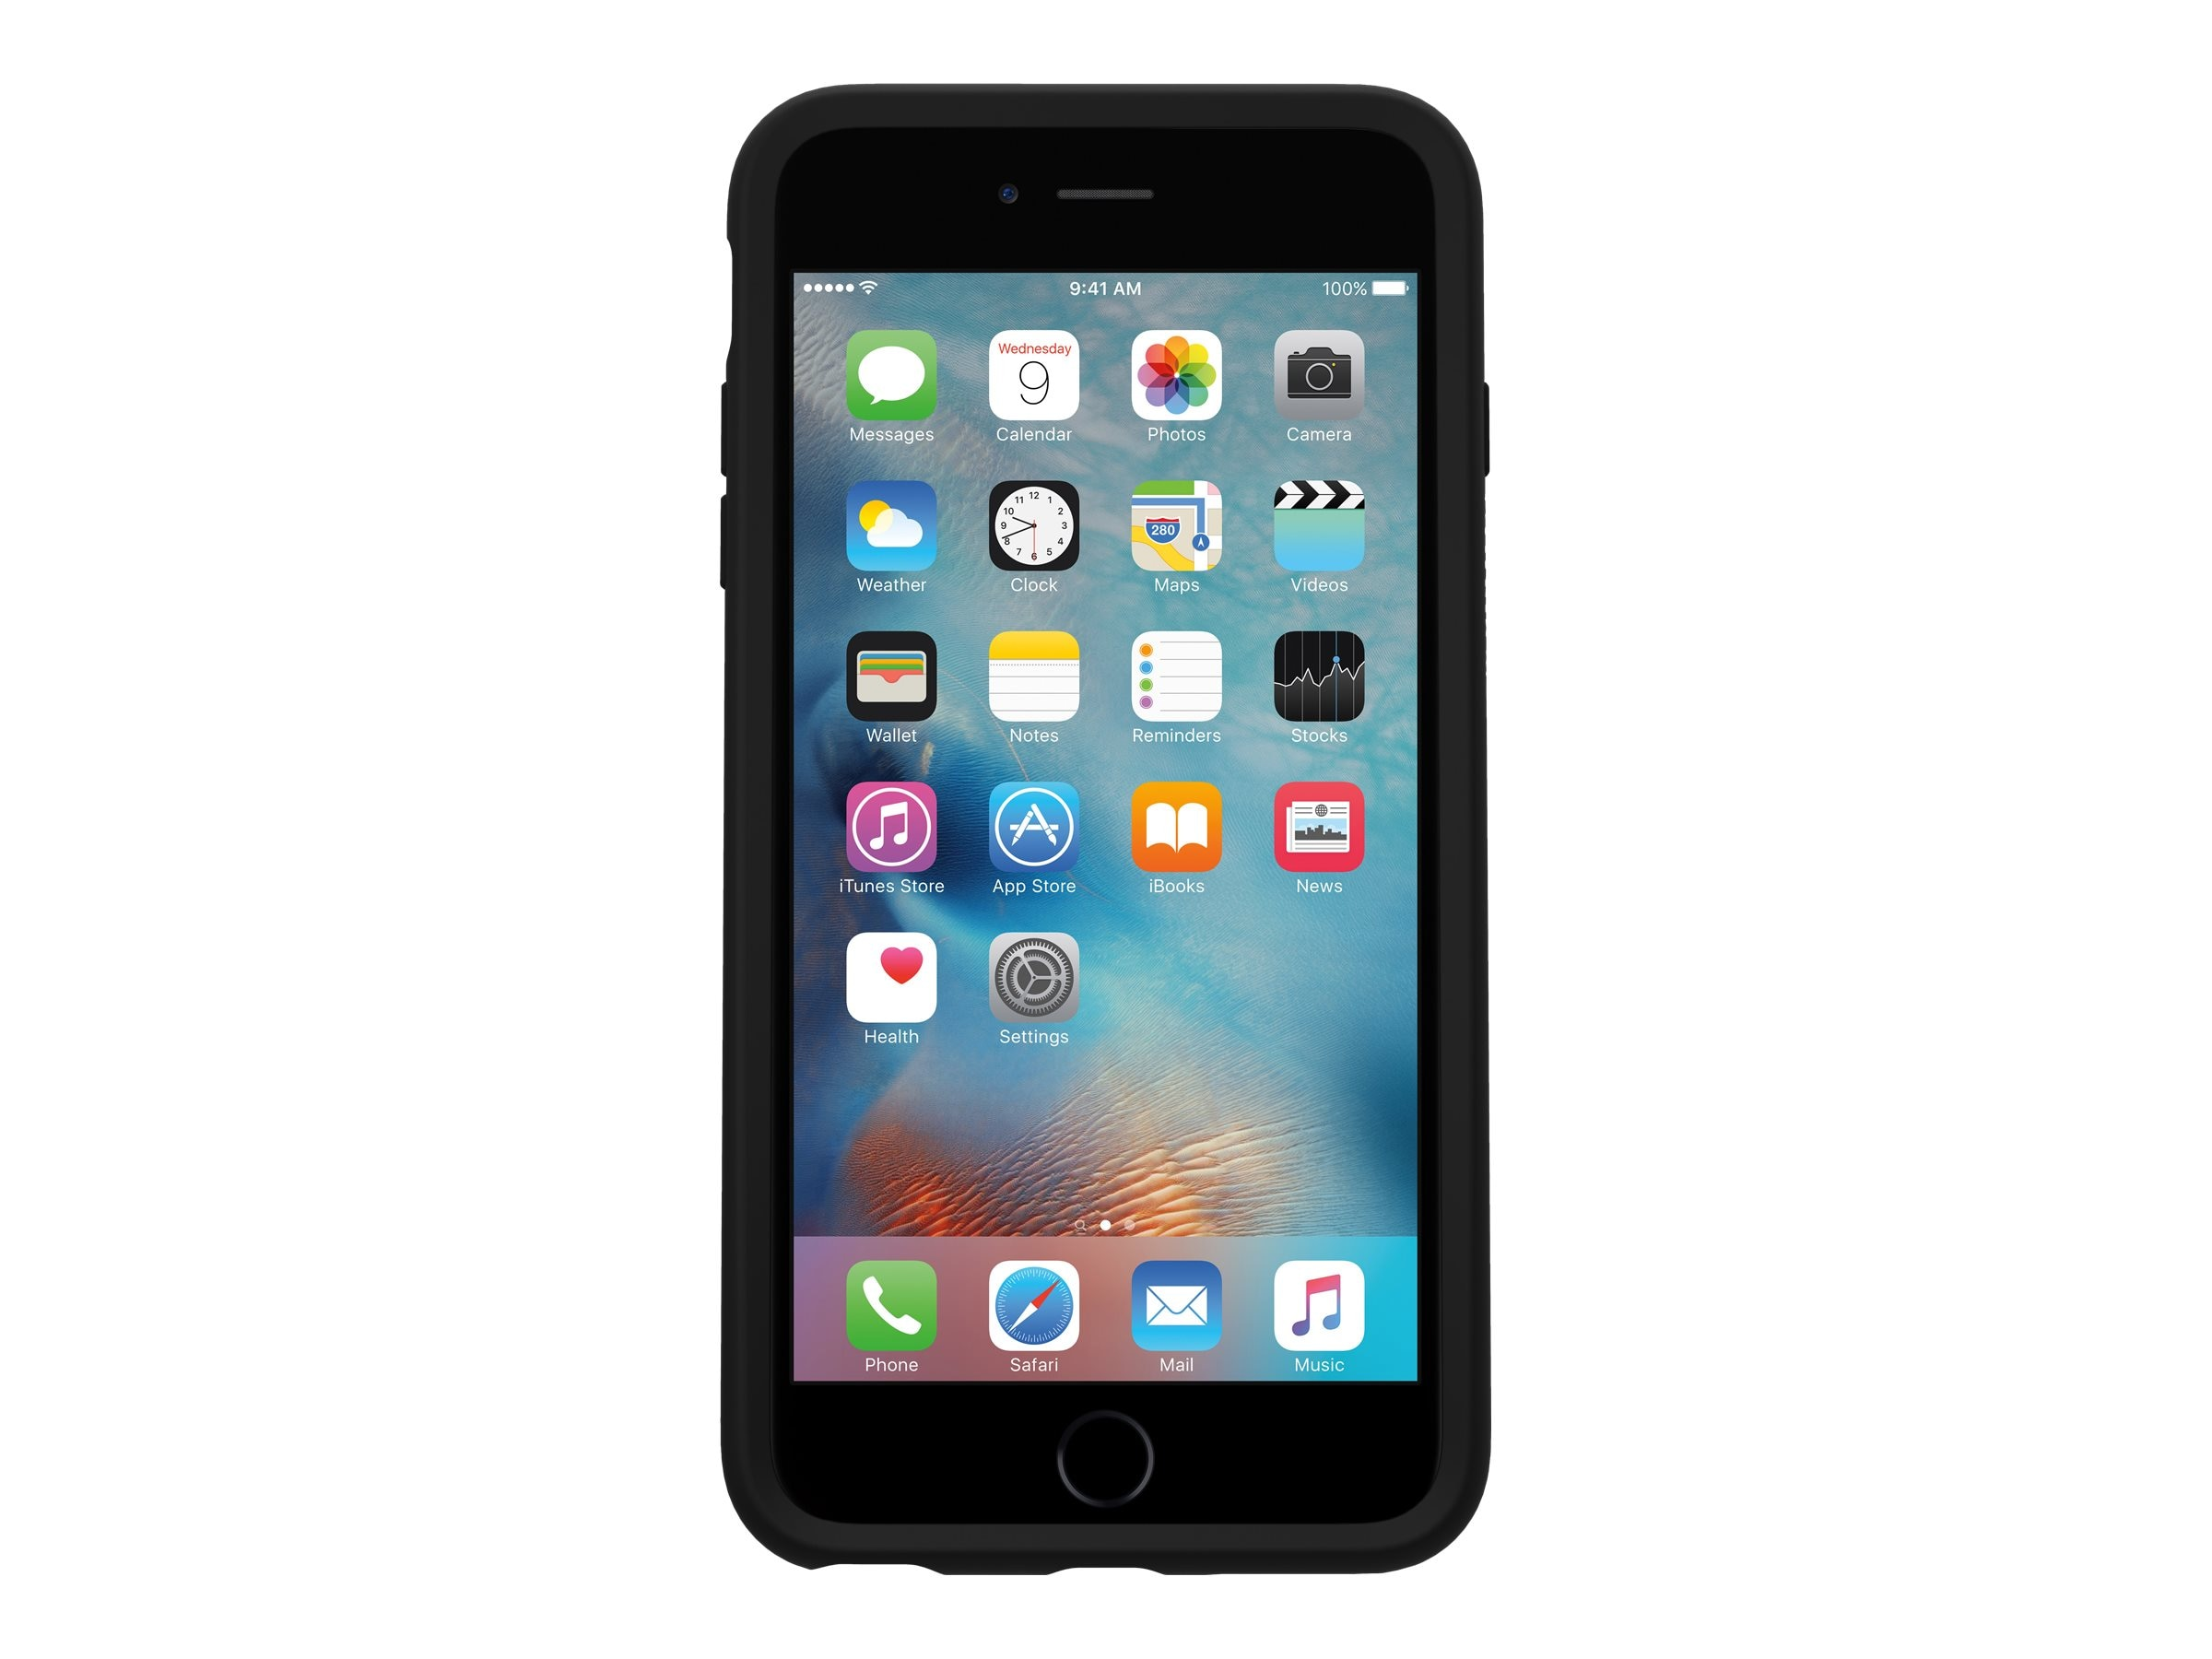 OtterBox Symmetry for iPhone 6 6S Plus, Black, 77-52378, 31469493, Carrying Cases - Phones/PDAs